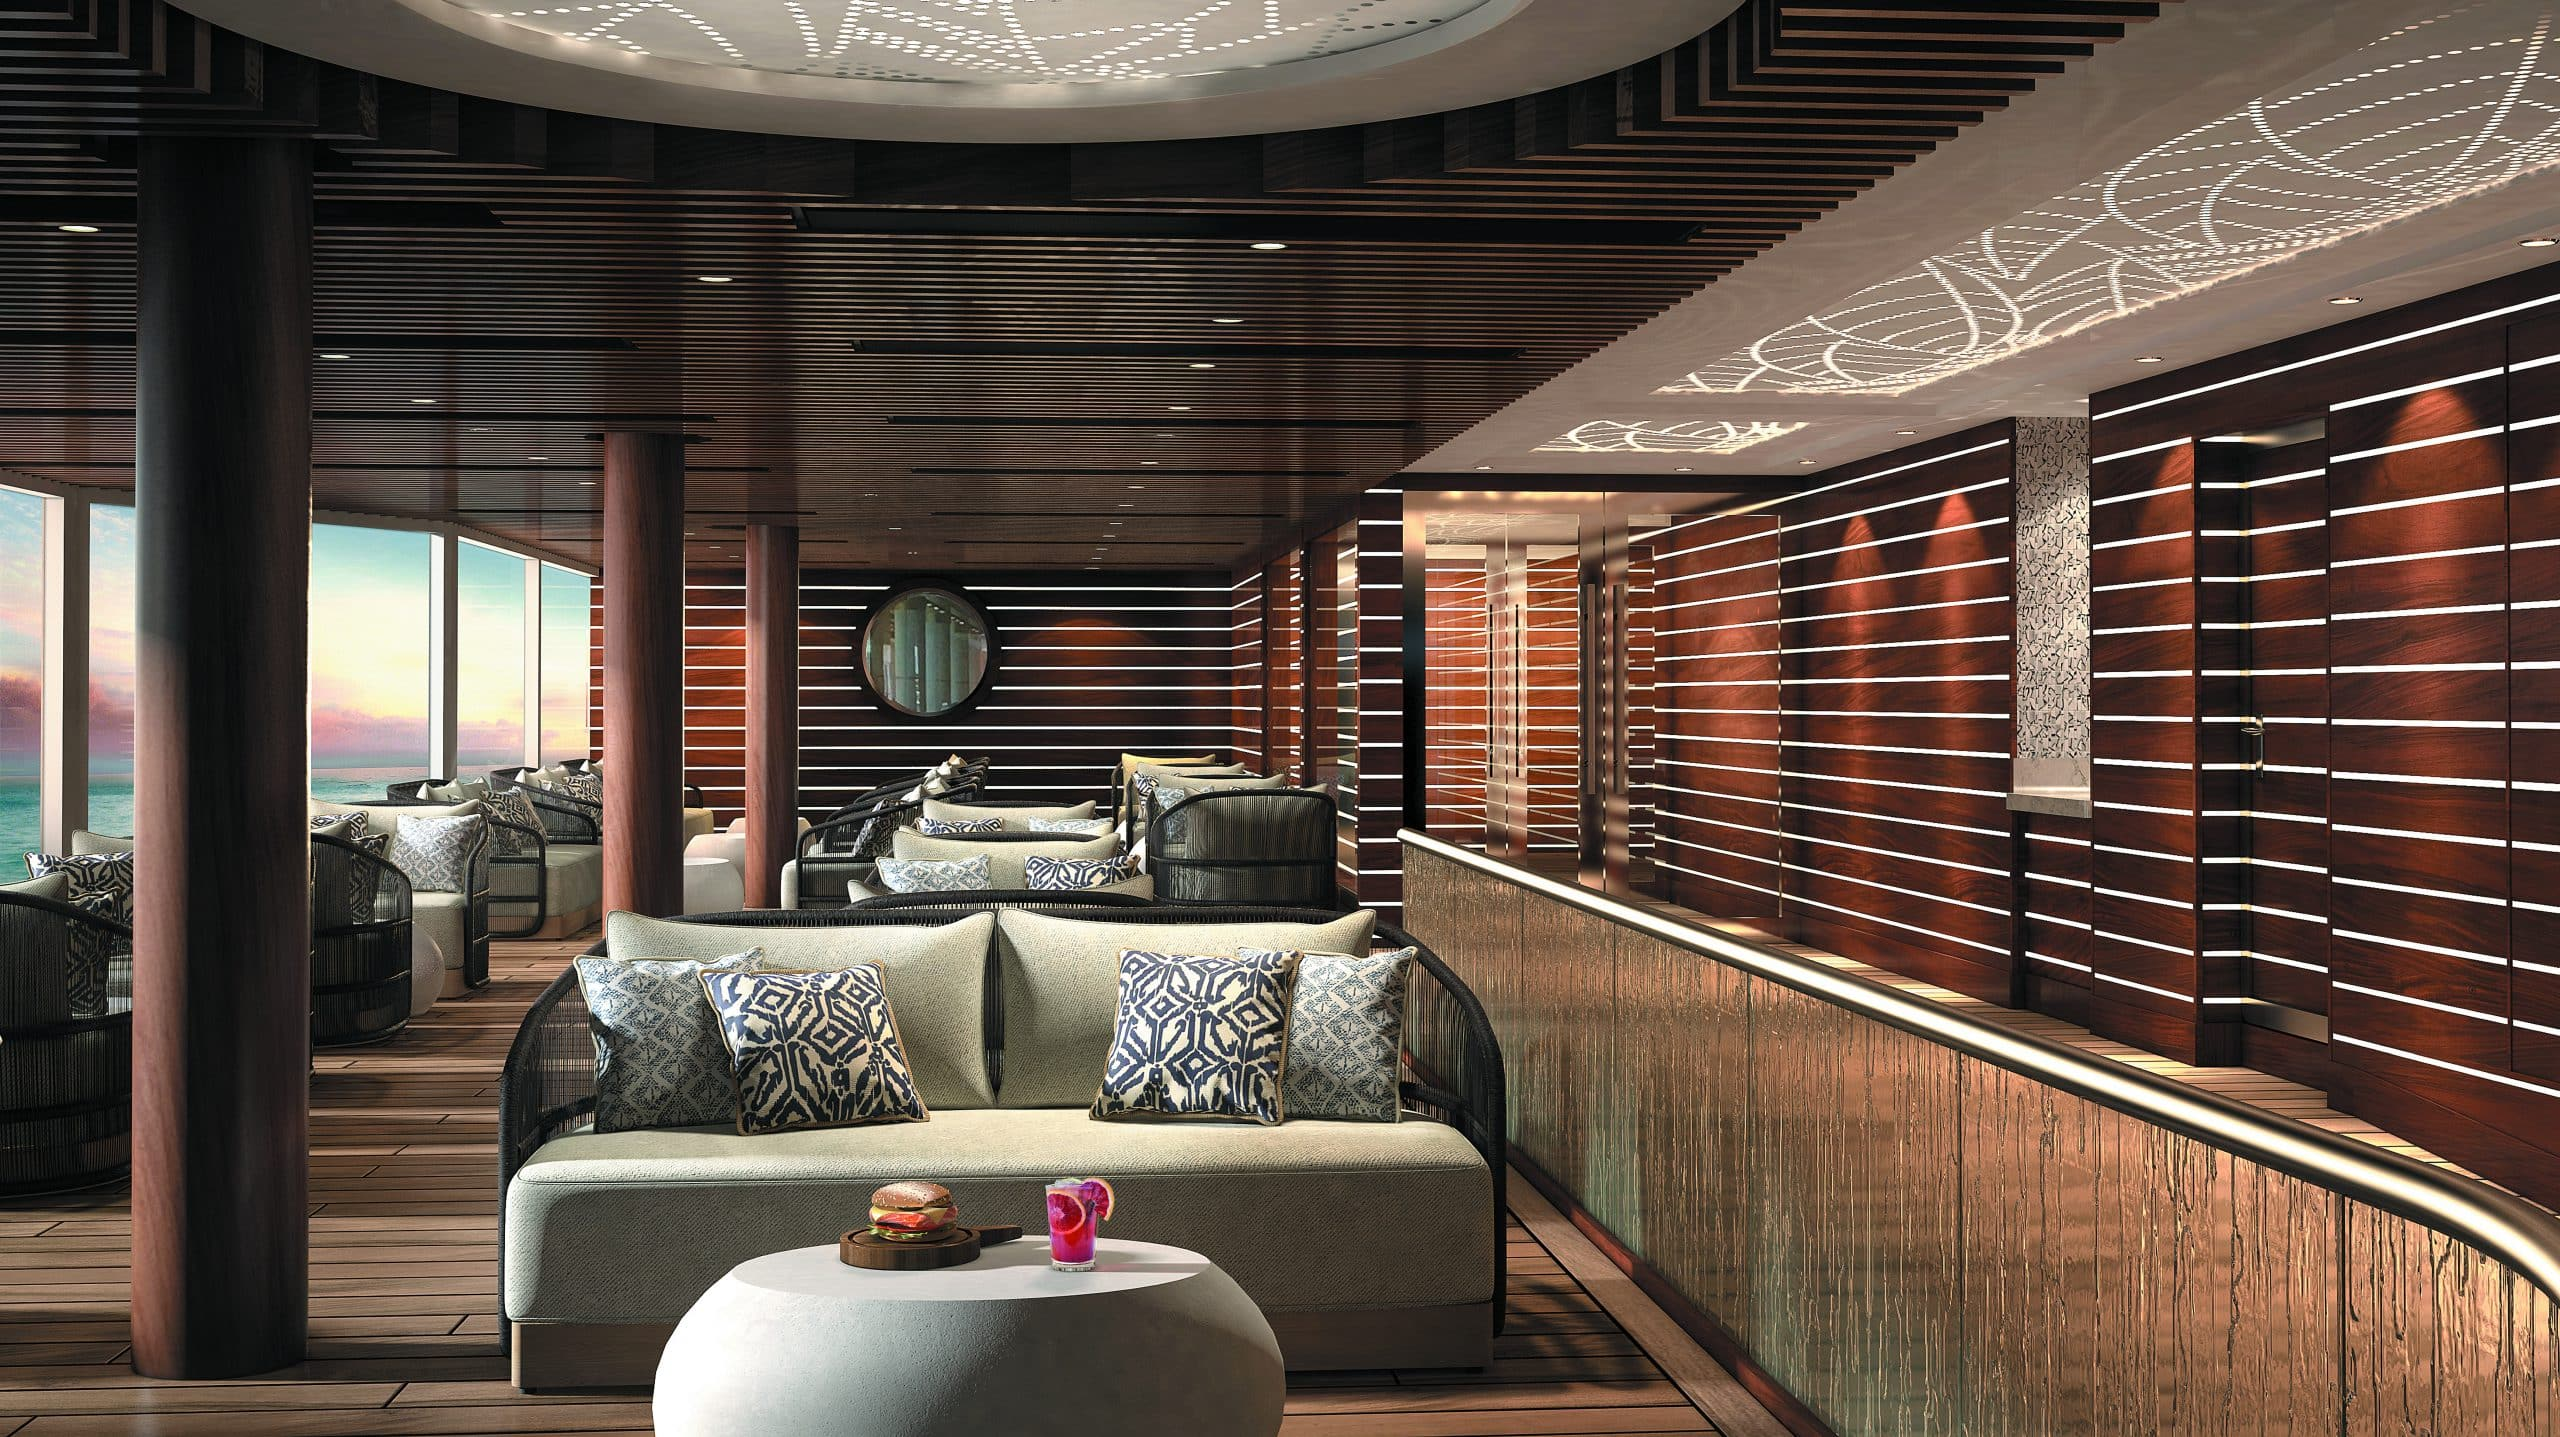 Regent Seven Seas Splendor Pool Deck - Grill Lounge